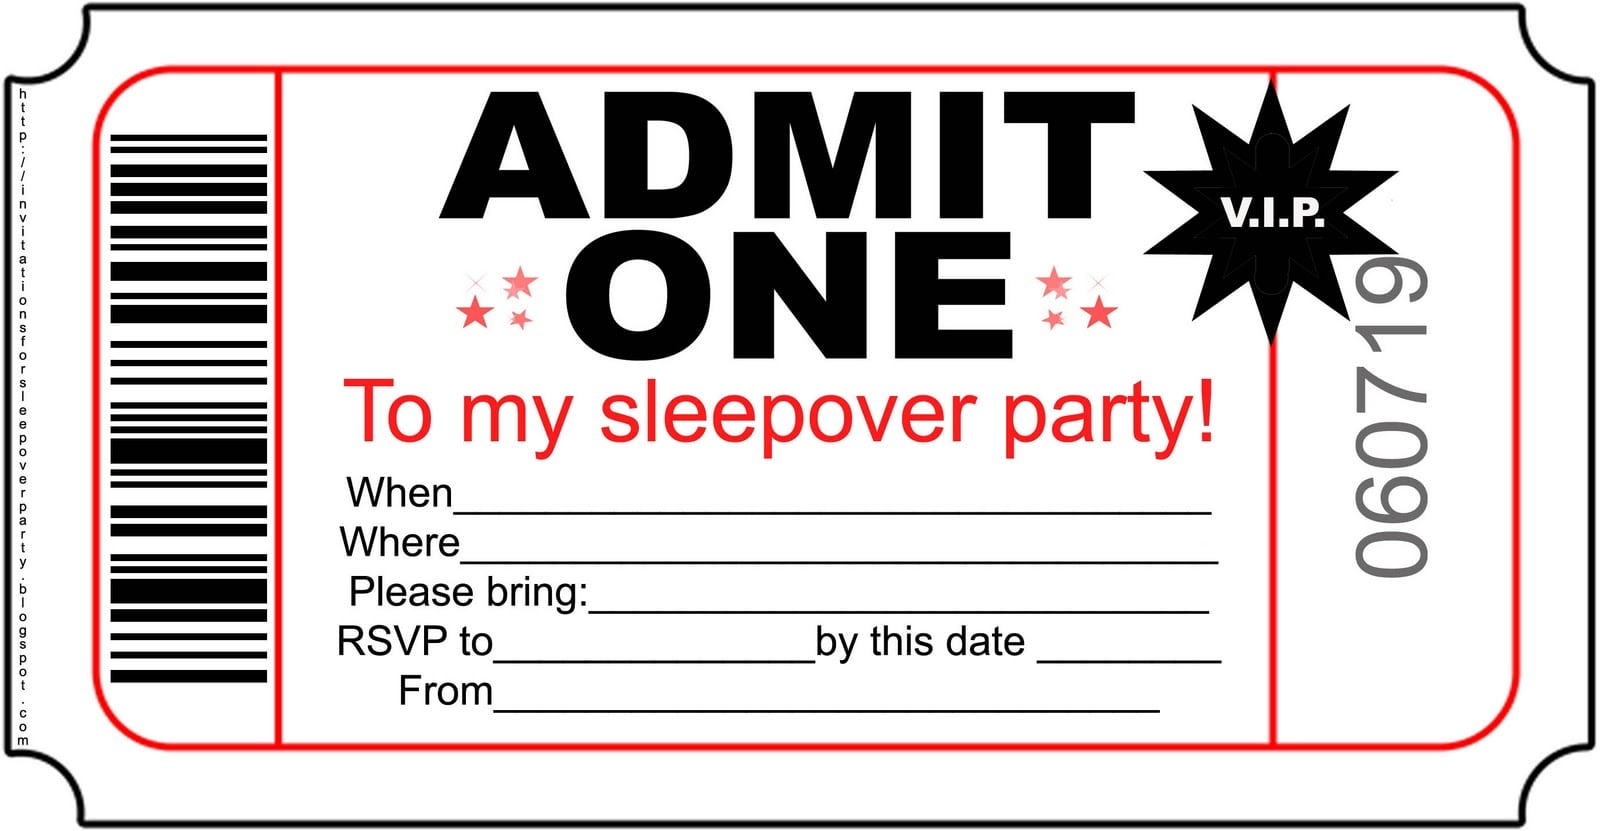 Free Printable Slumber Party Invitation Templates ead1Uopf